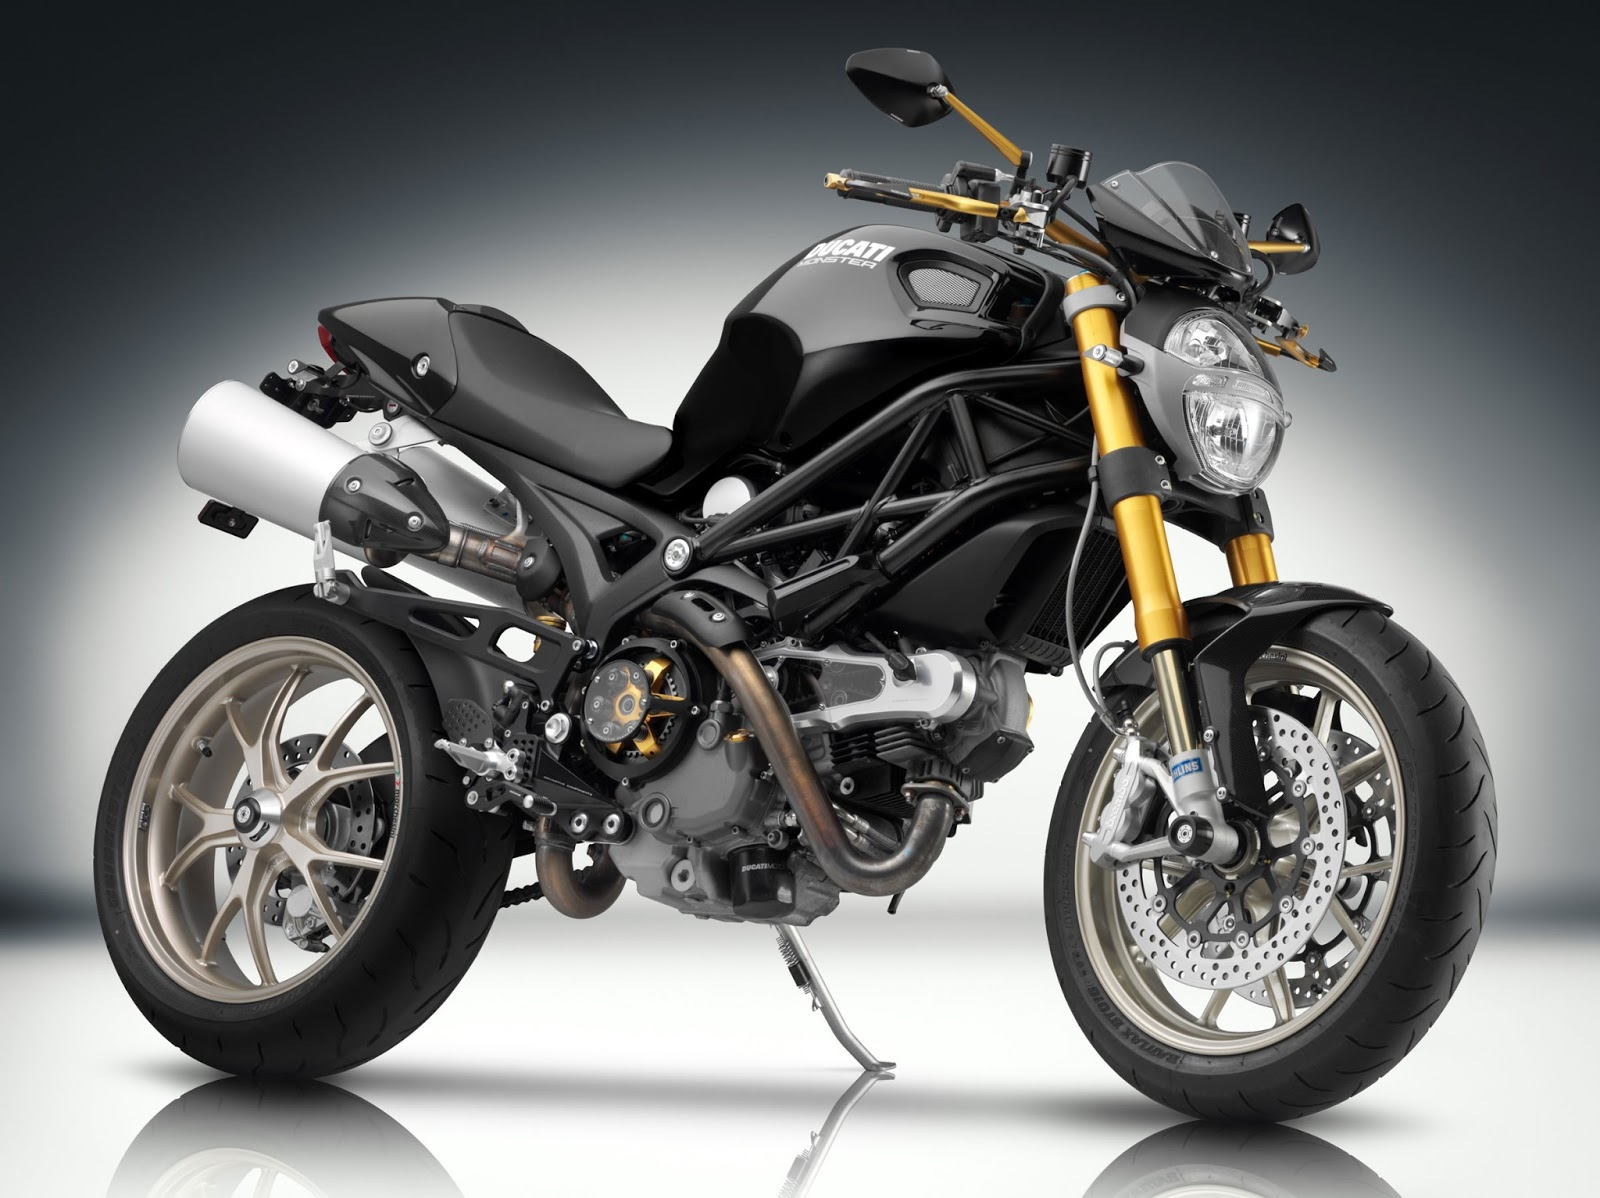 ducati monster 1100 evo wallpaper world. Black Bedroom Furniture Sets. Home Design Ideas